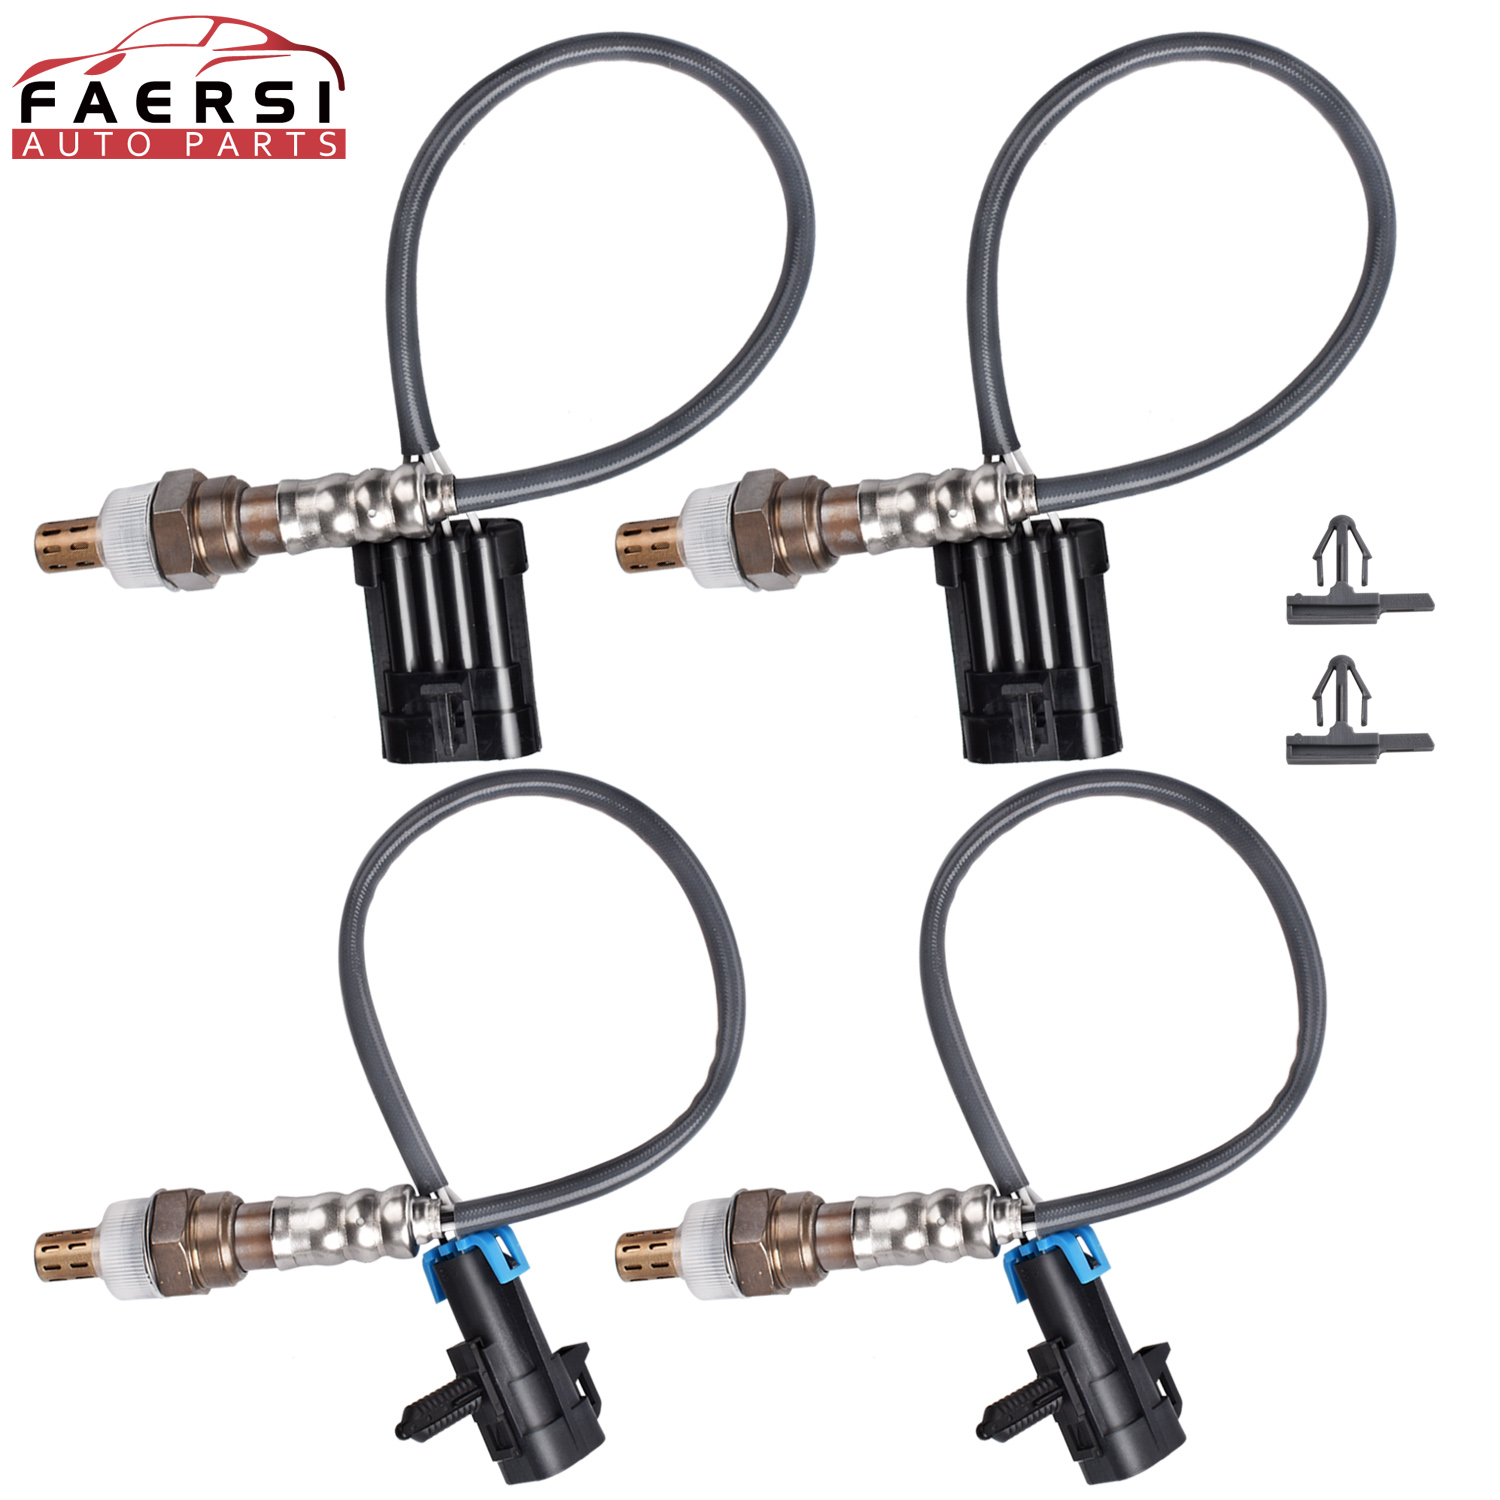 4pcs Upstream & Downstream O2 Oxygen Sensor Set for Chevy